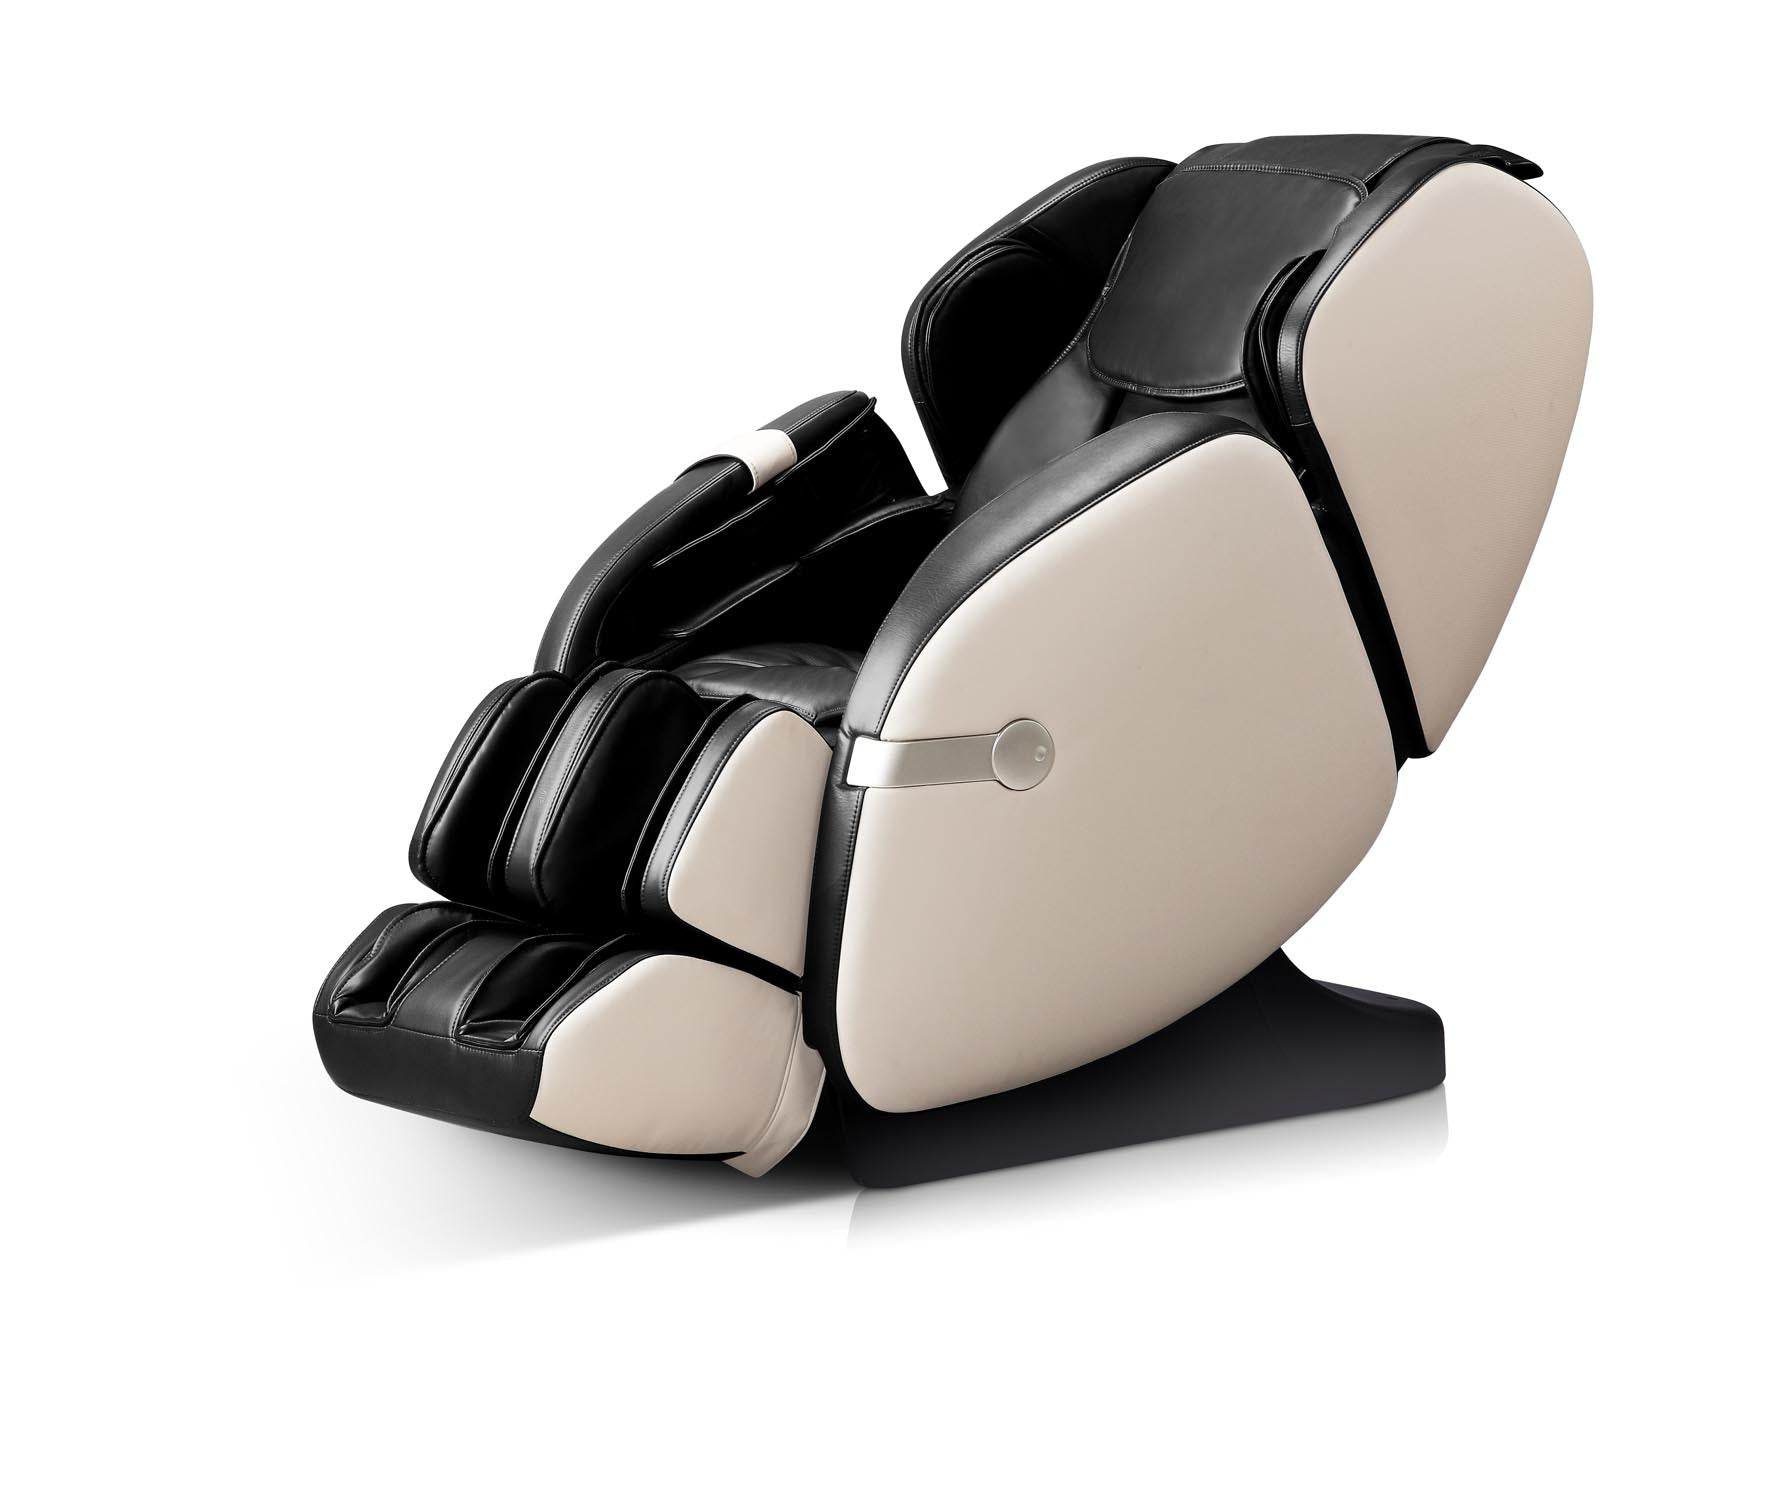 Why buy a massage chair?